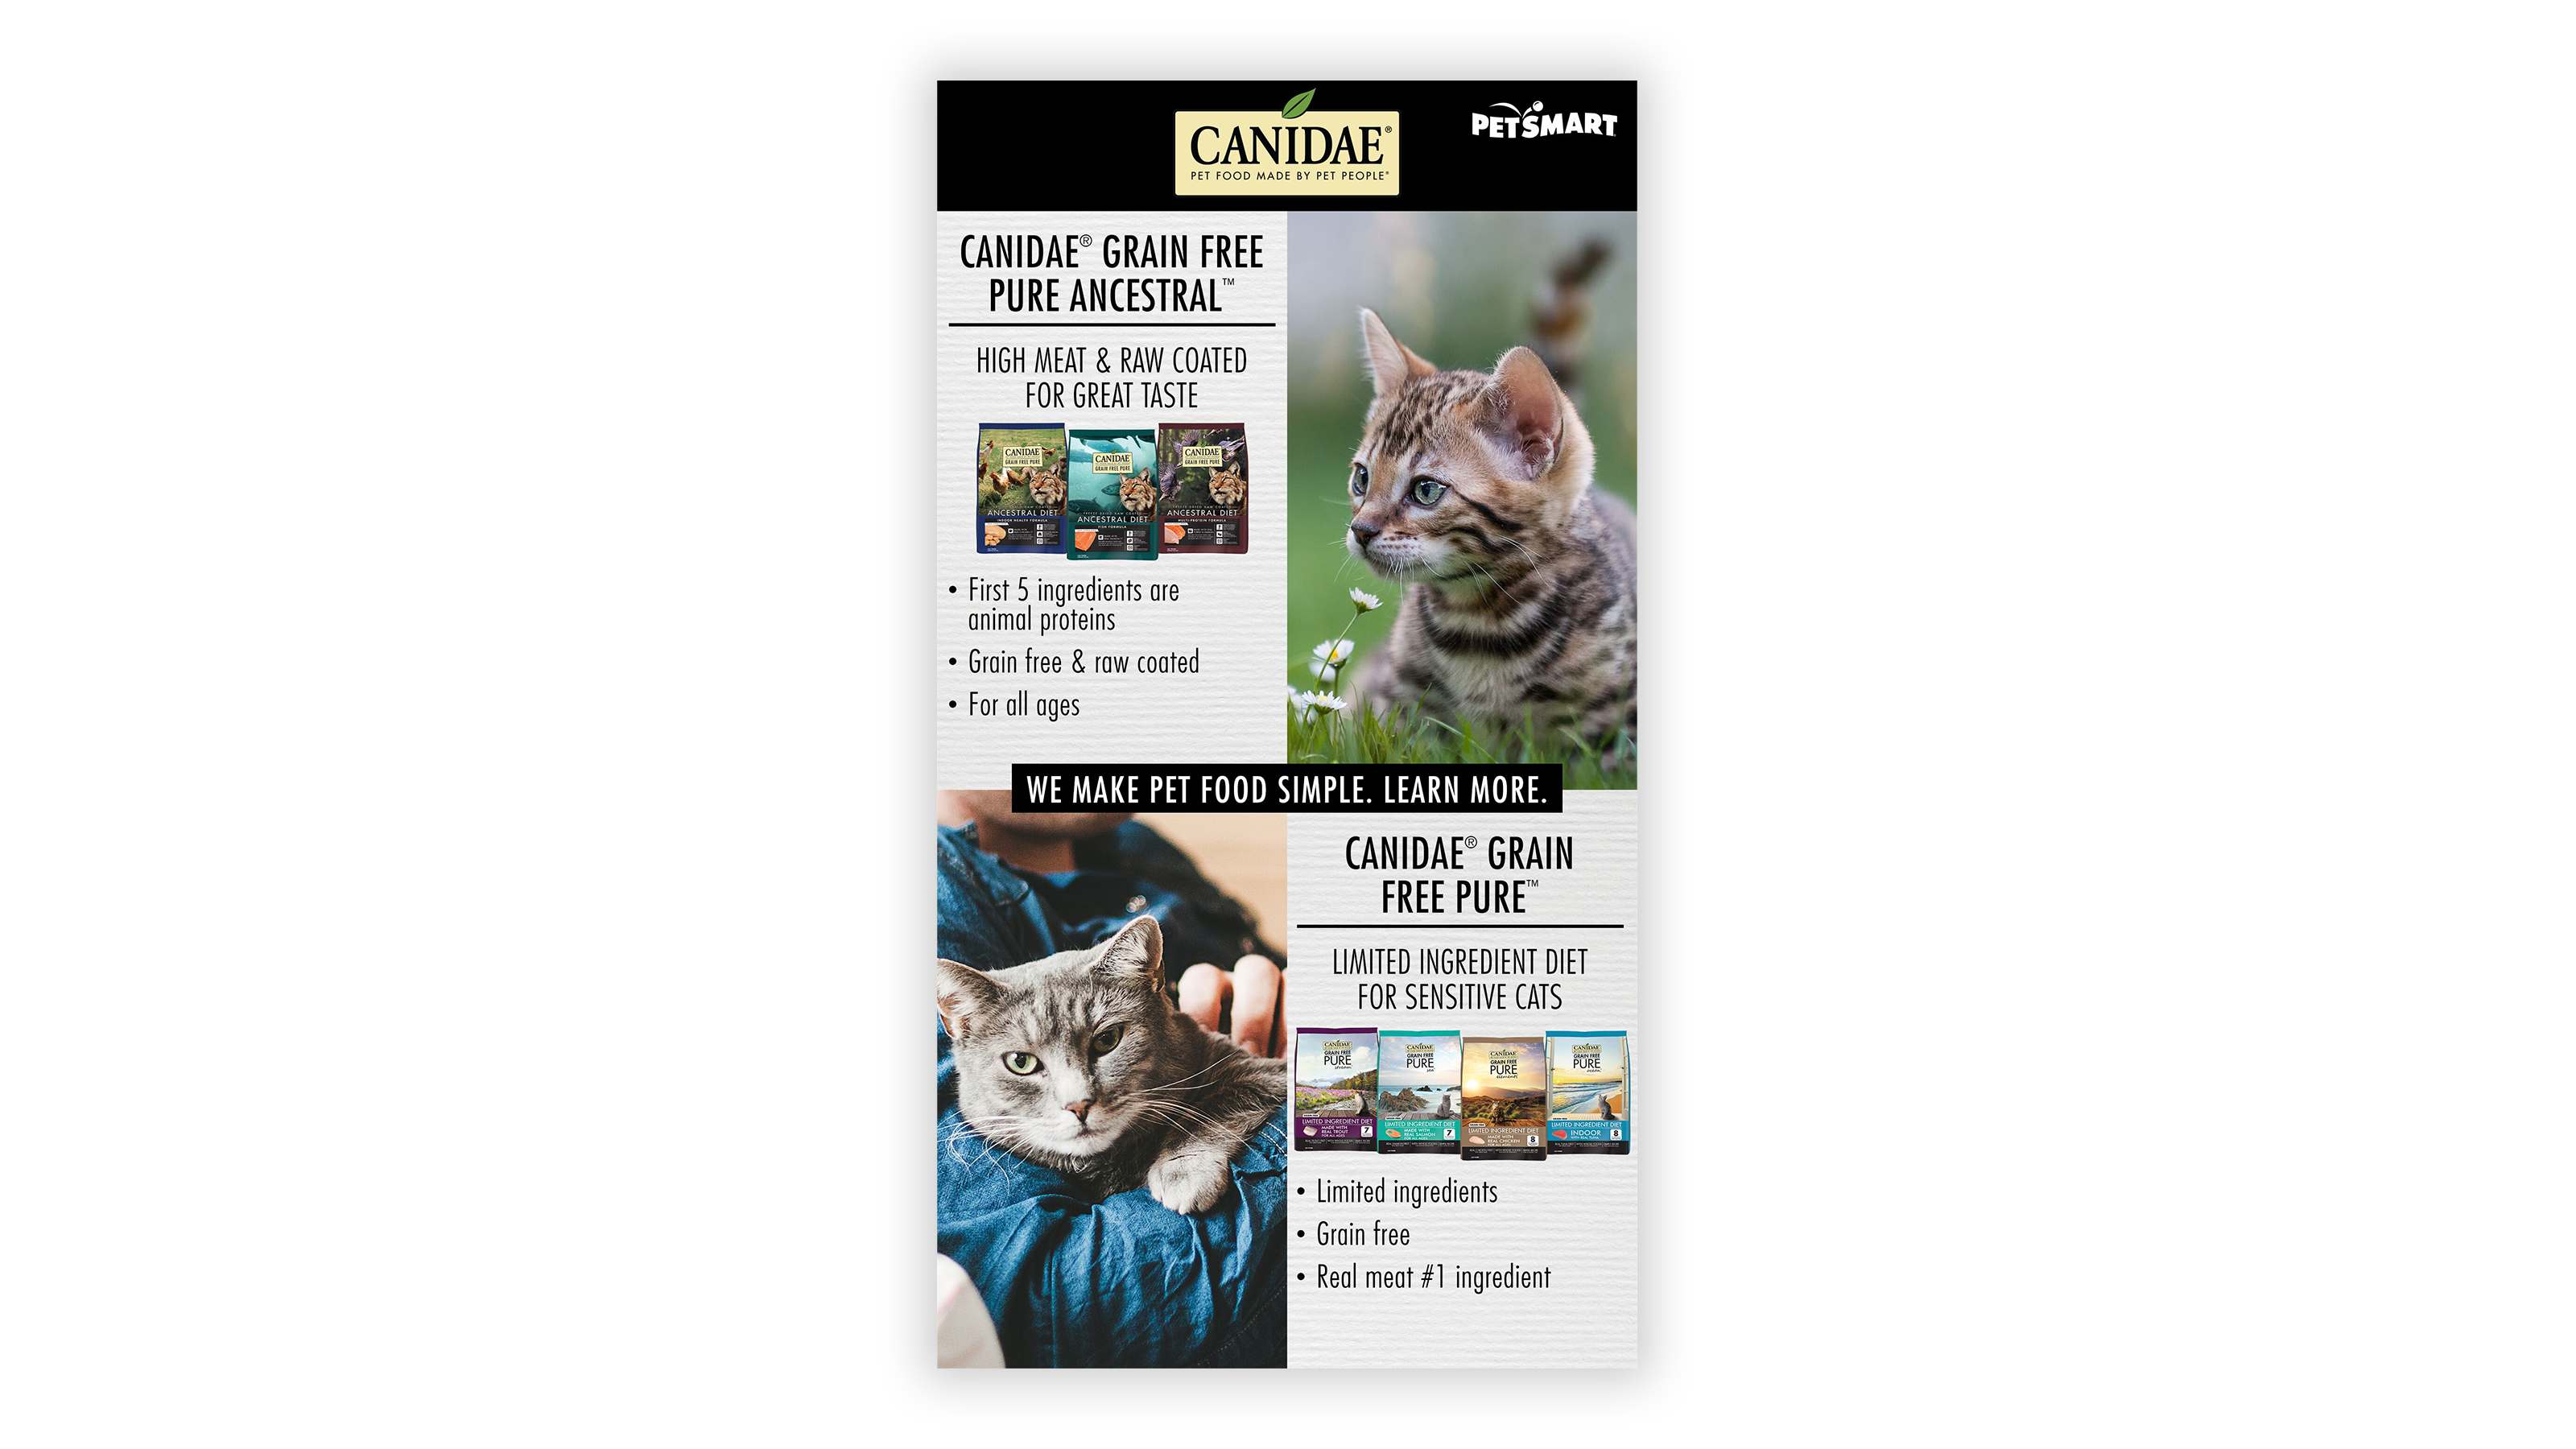 CANIDAE Digital ad for PetSmart